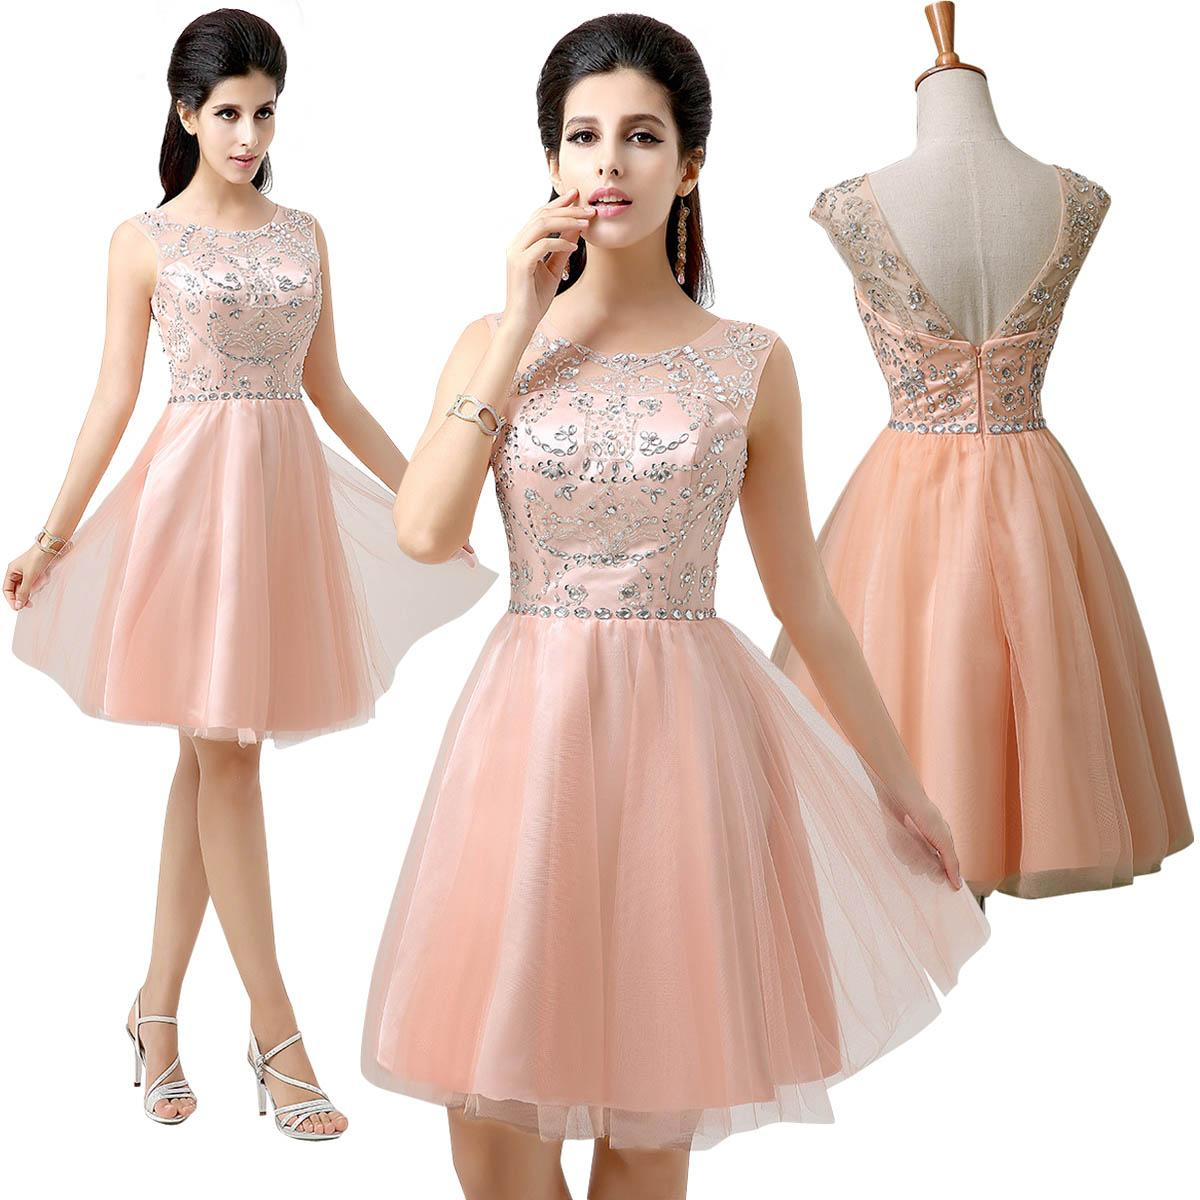 d1d2ac0dbc5 Actual Image 2015 Blush Short Prom Dresses Under 100 A-line Tulle Capped  Sleeves Crystal Shining ...